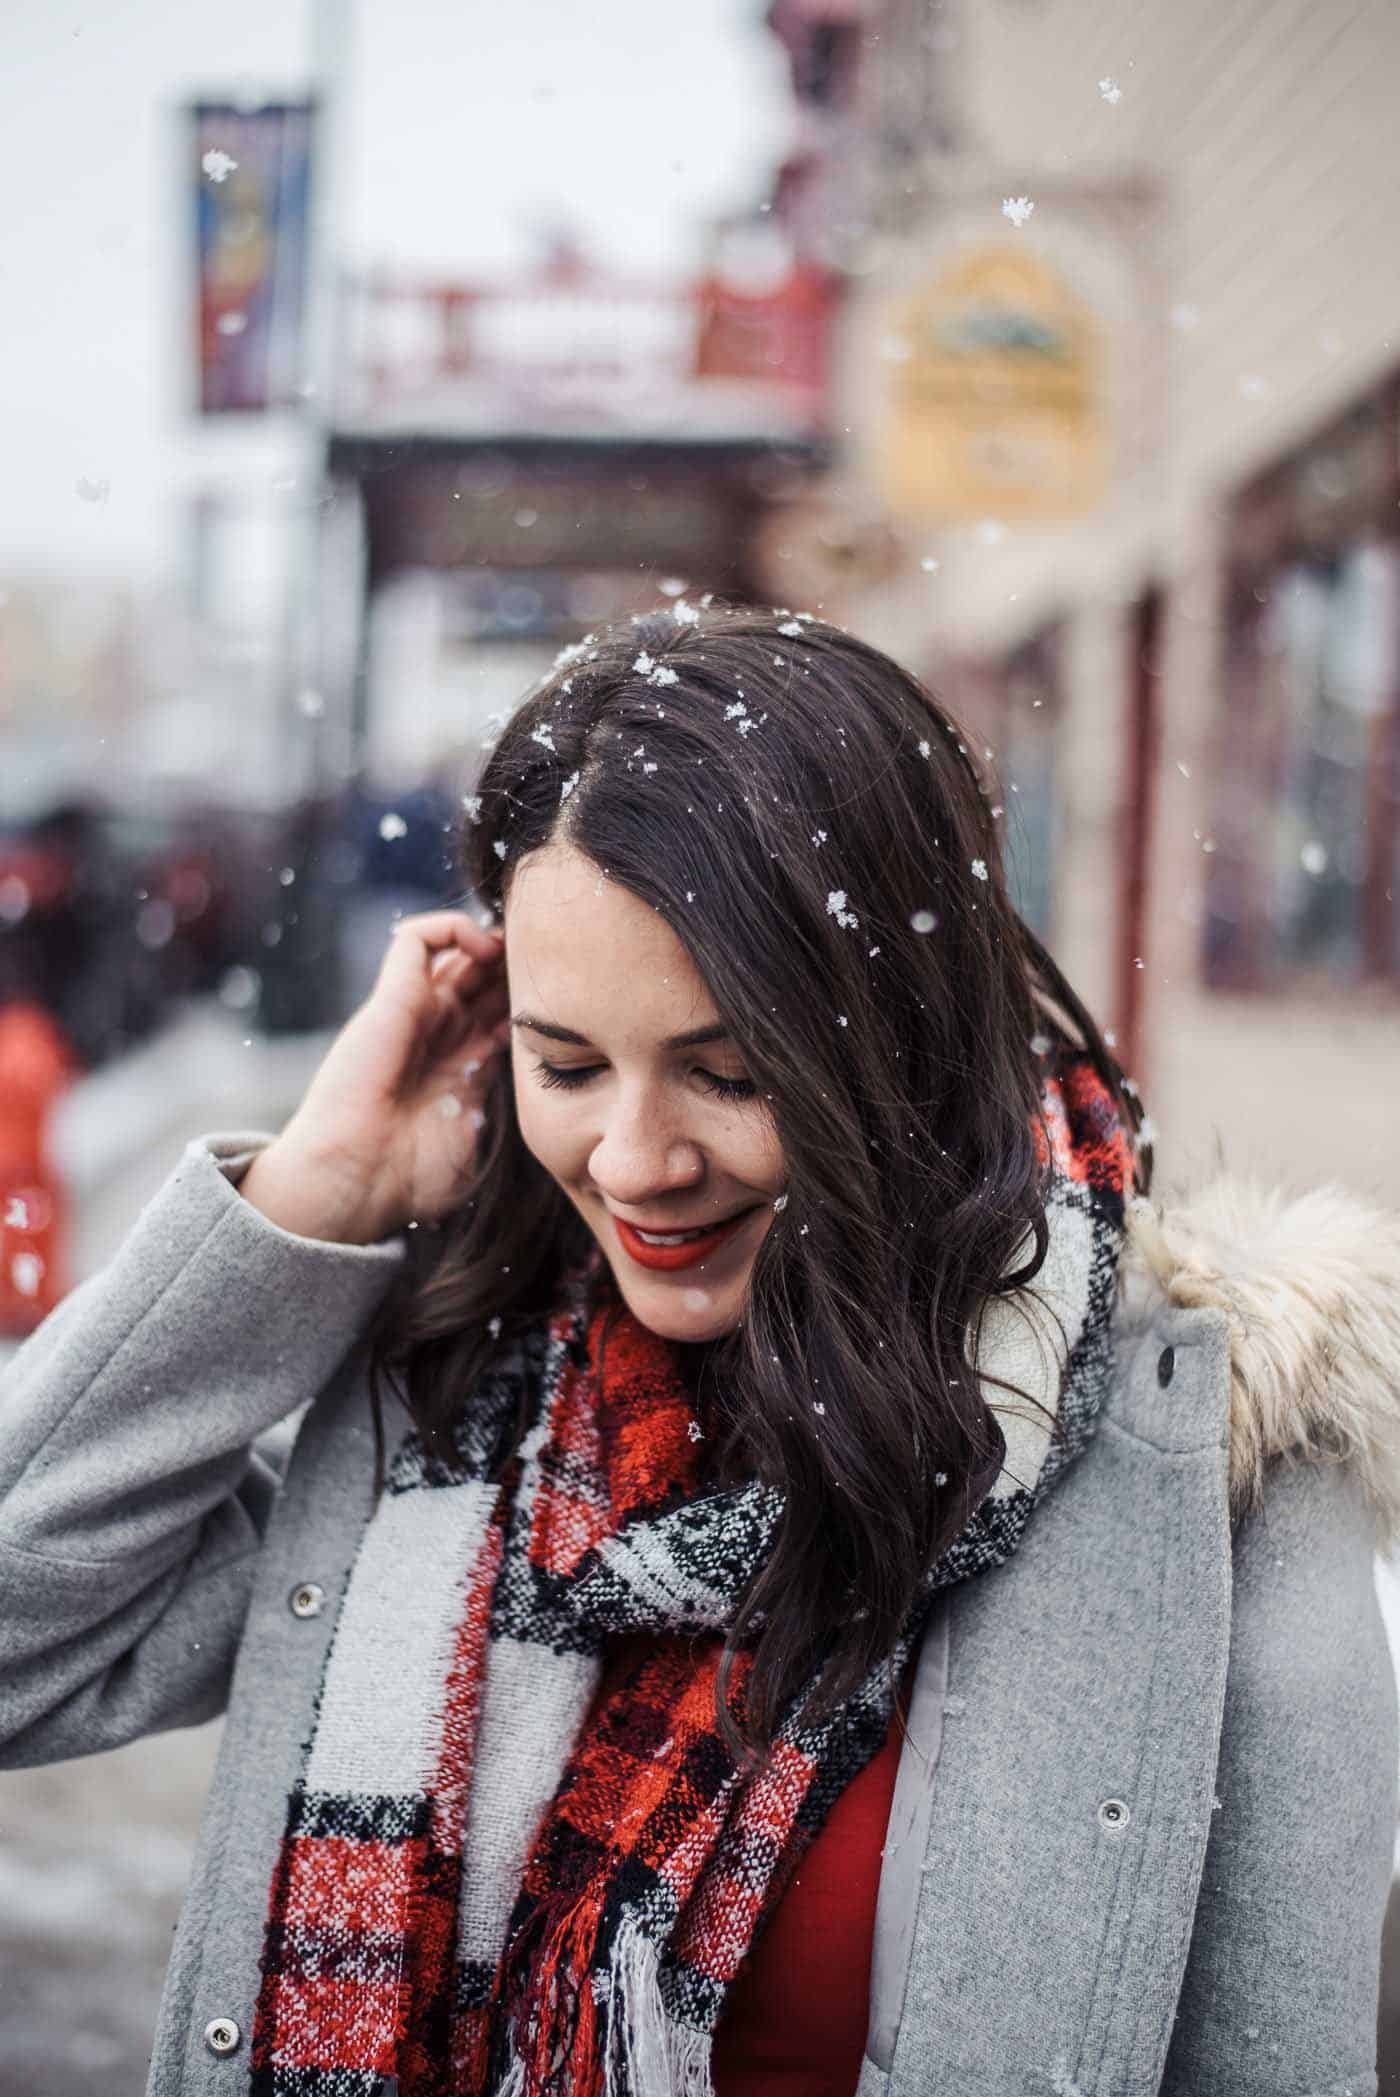 how to dress up snow boots - dressed up duck boots - red dress and winter coat - My Style Vita @mystylevita